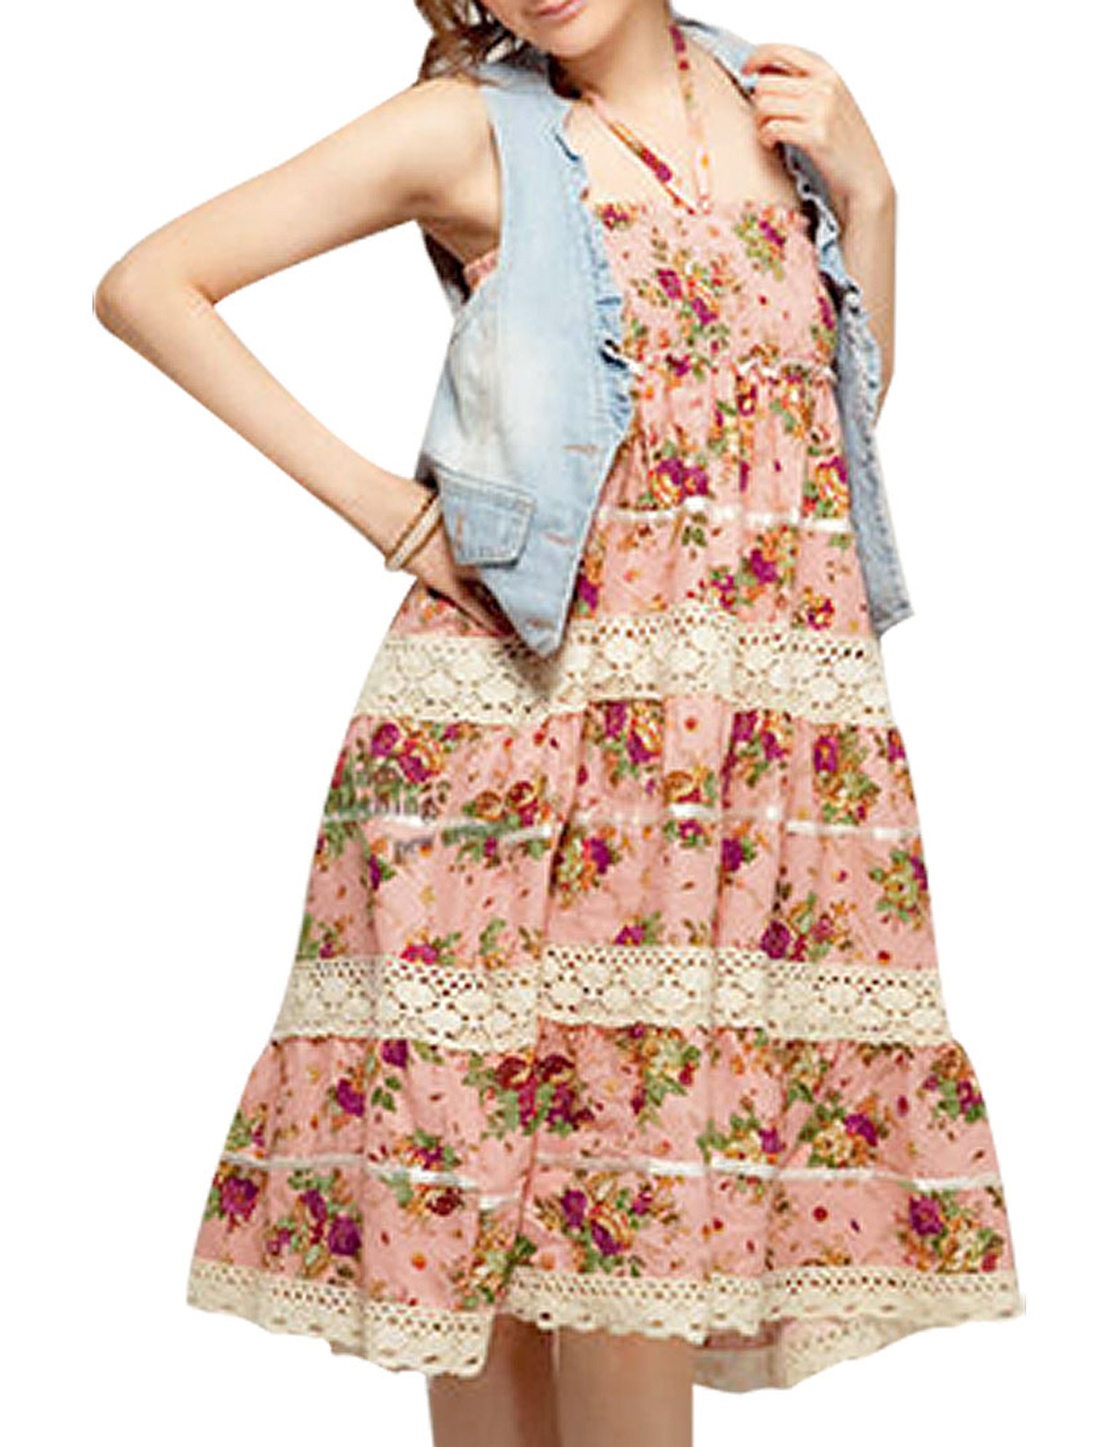 Pink Elastic Flowers Print Halter Neck Sleeveless Long Skirt Dress XS